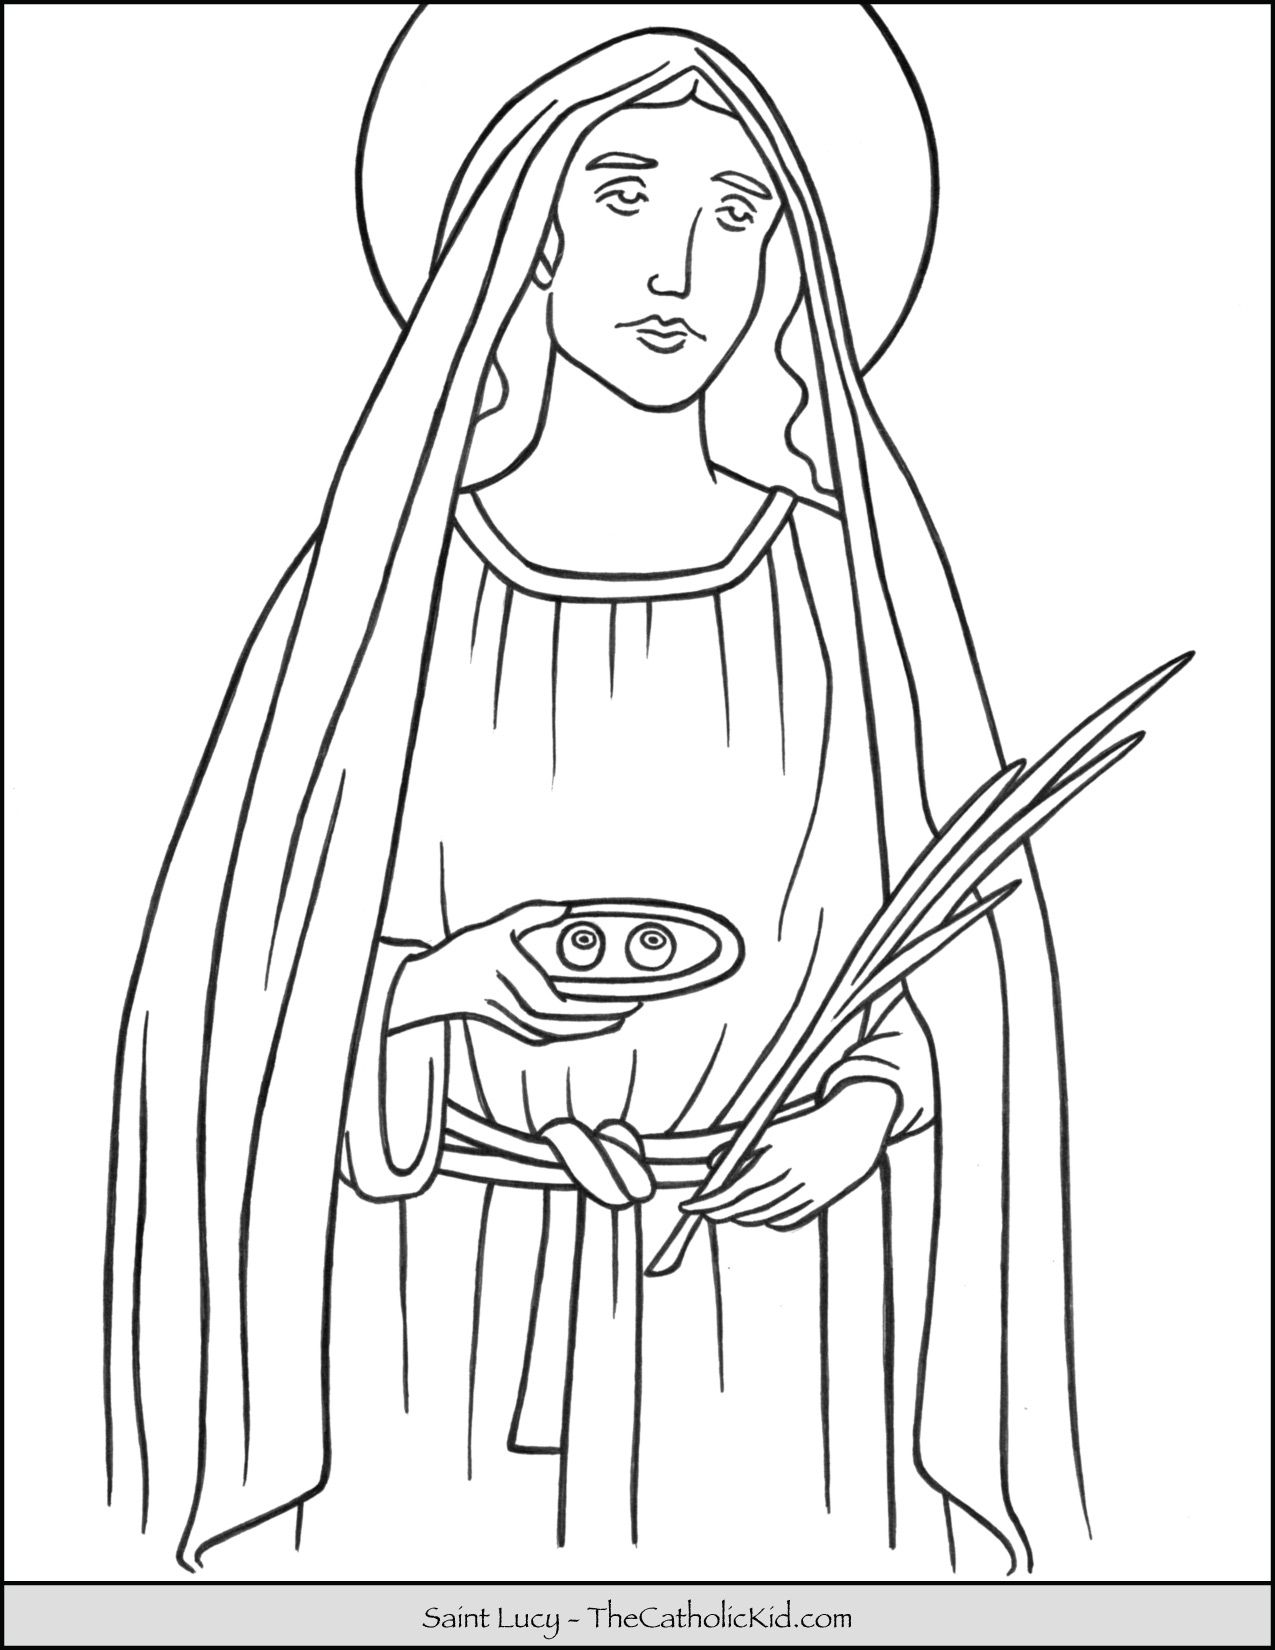 Saint Lucy Coloring Page Cat Coloring Page Saint Lucy Coloring Pages